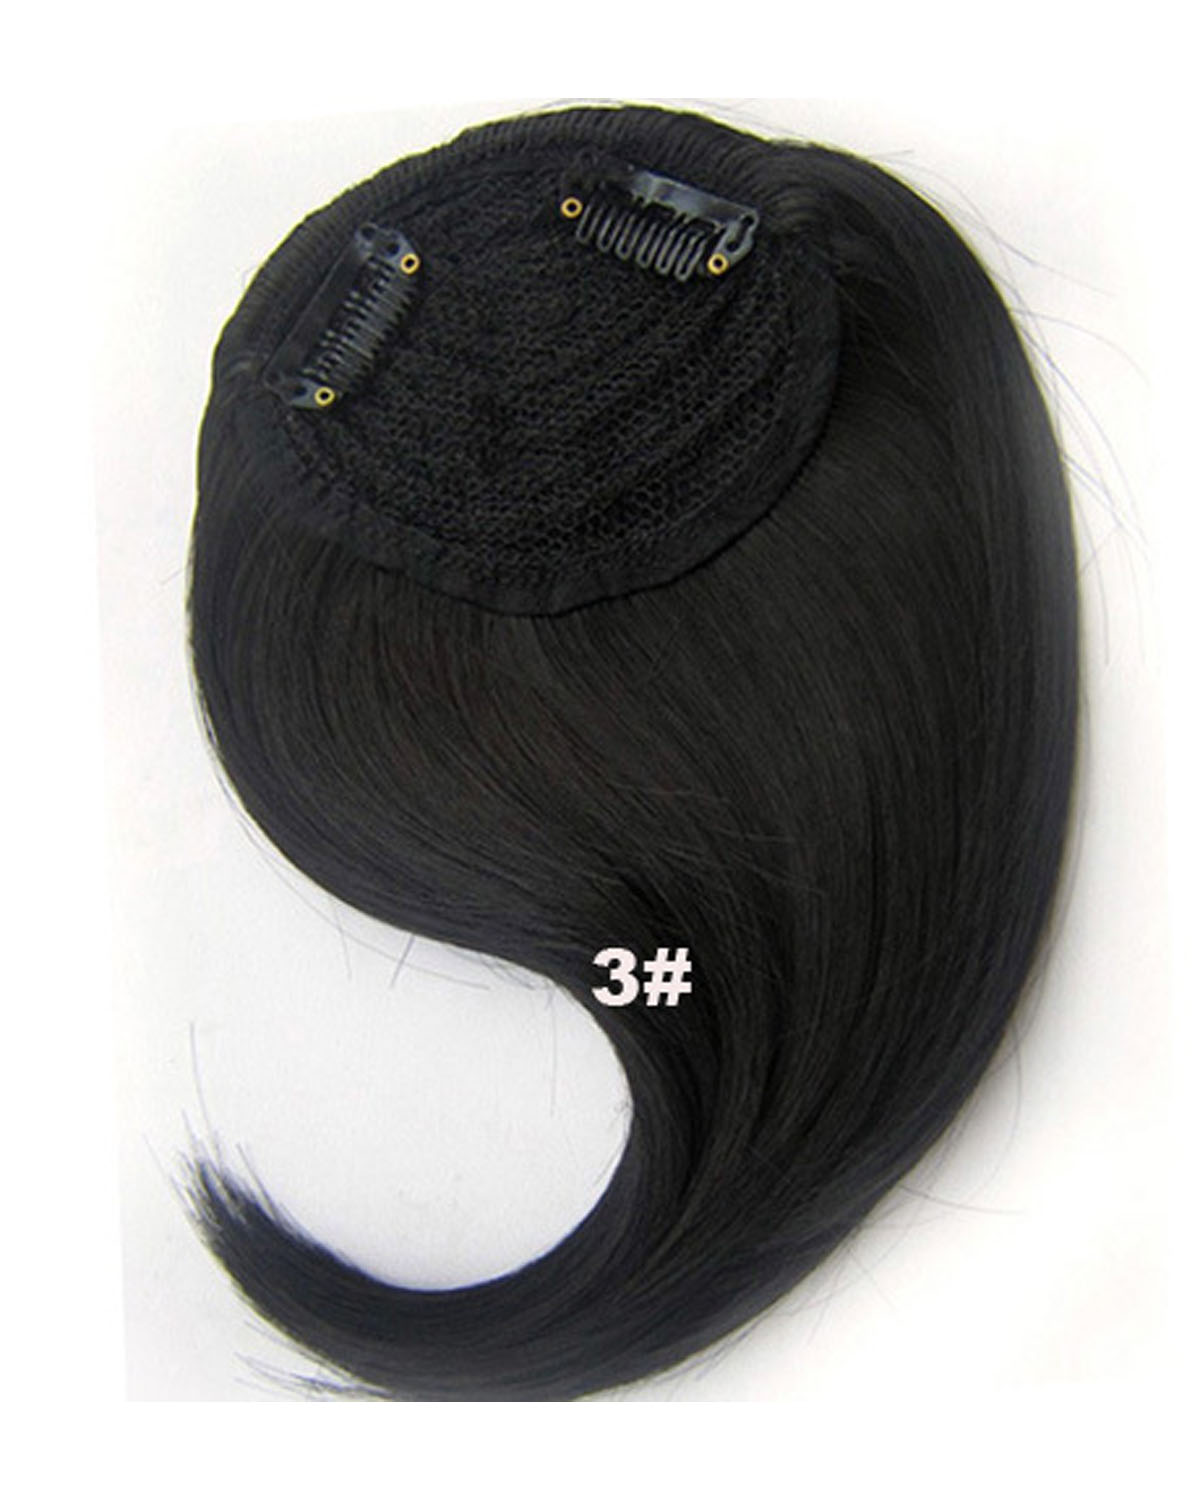 Girls Smooth Straight Short Bangs Clip in Synthetic Hair Extension Fringe Bangs Hairpiece 3#